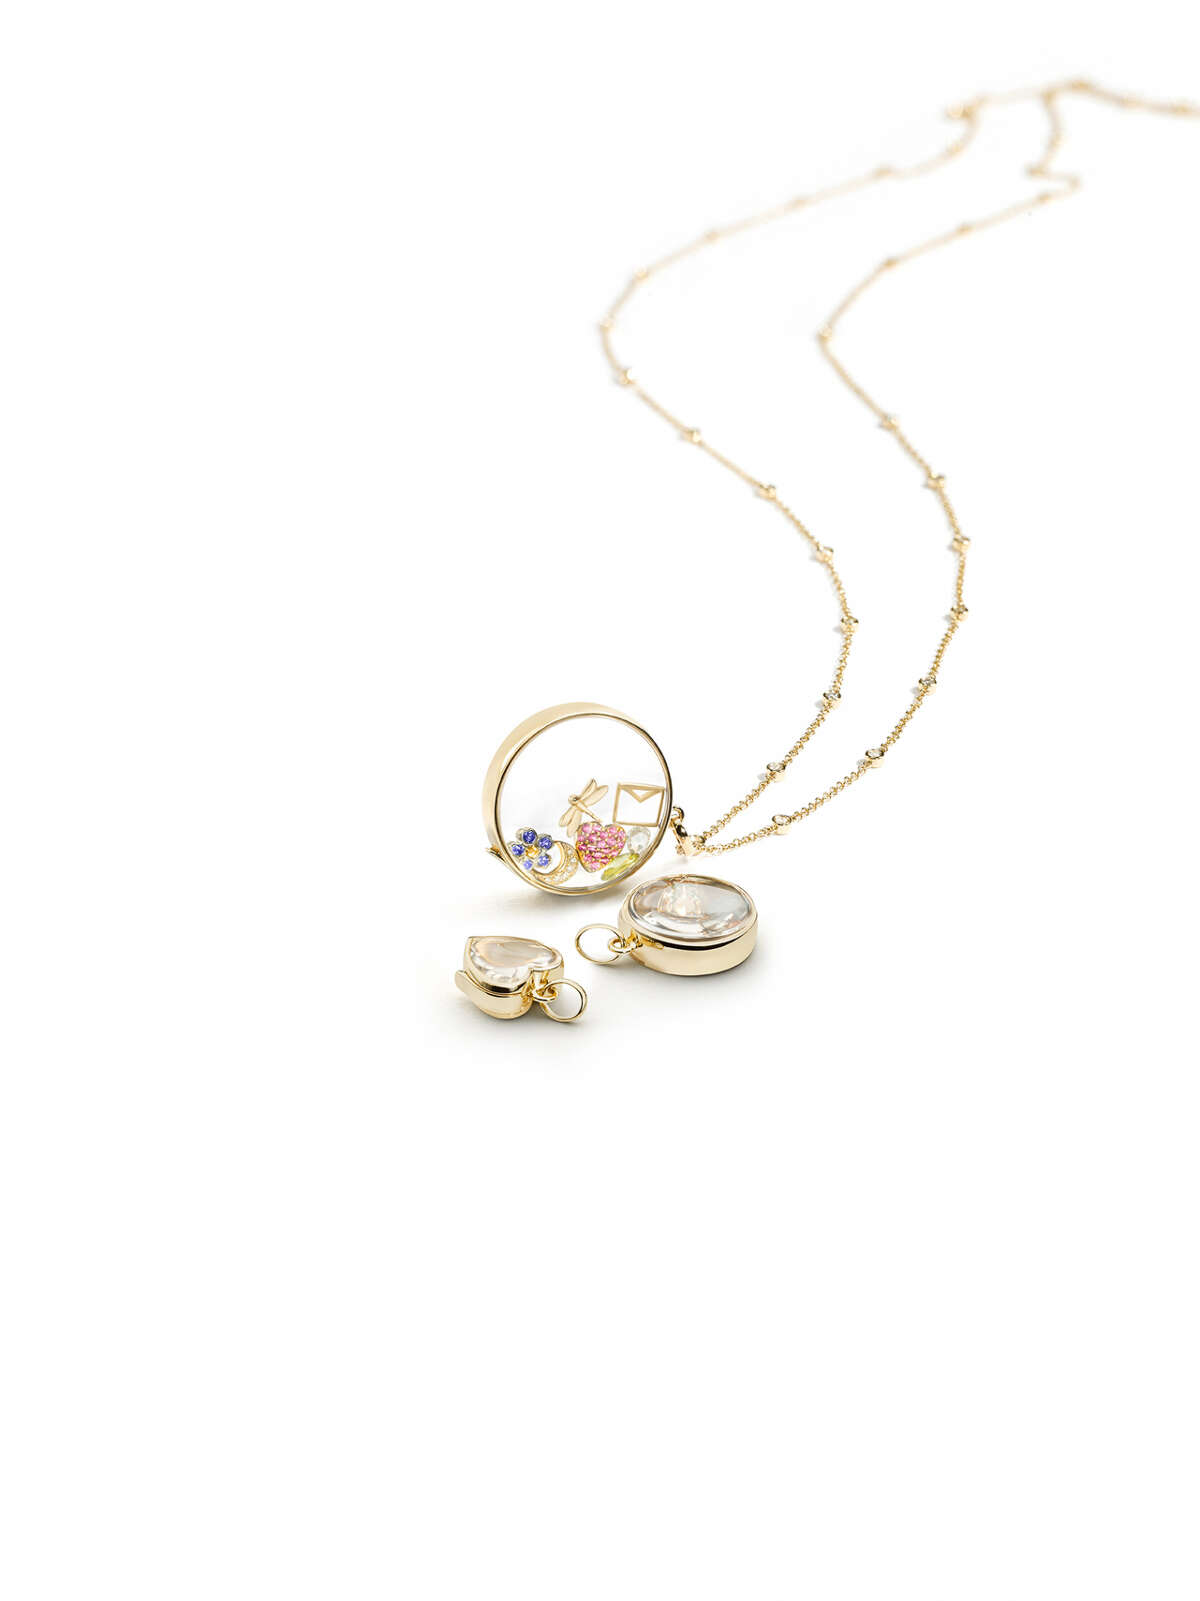 Mom will get a locket necklace from the hotel's designer boutique, 29° North.